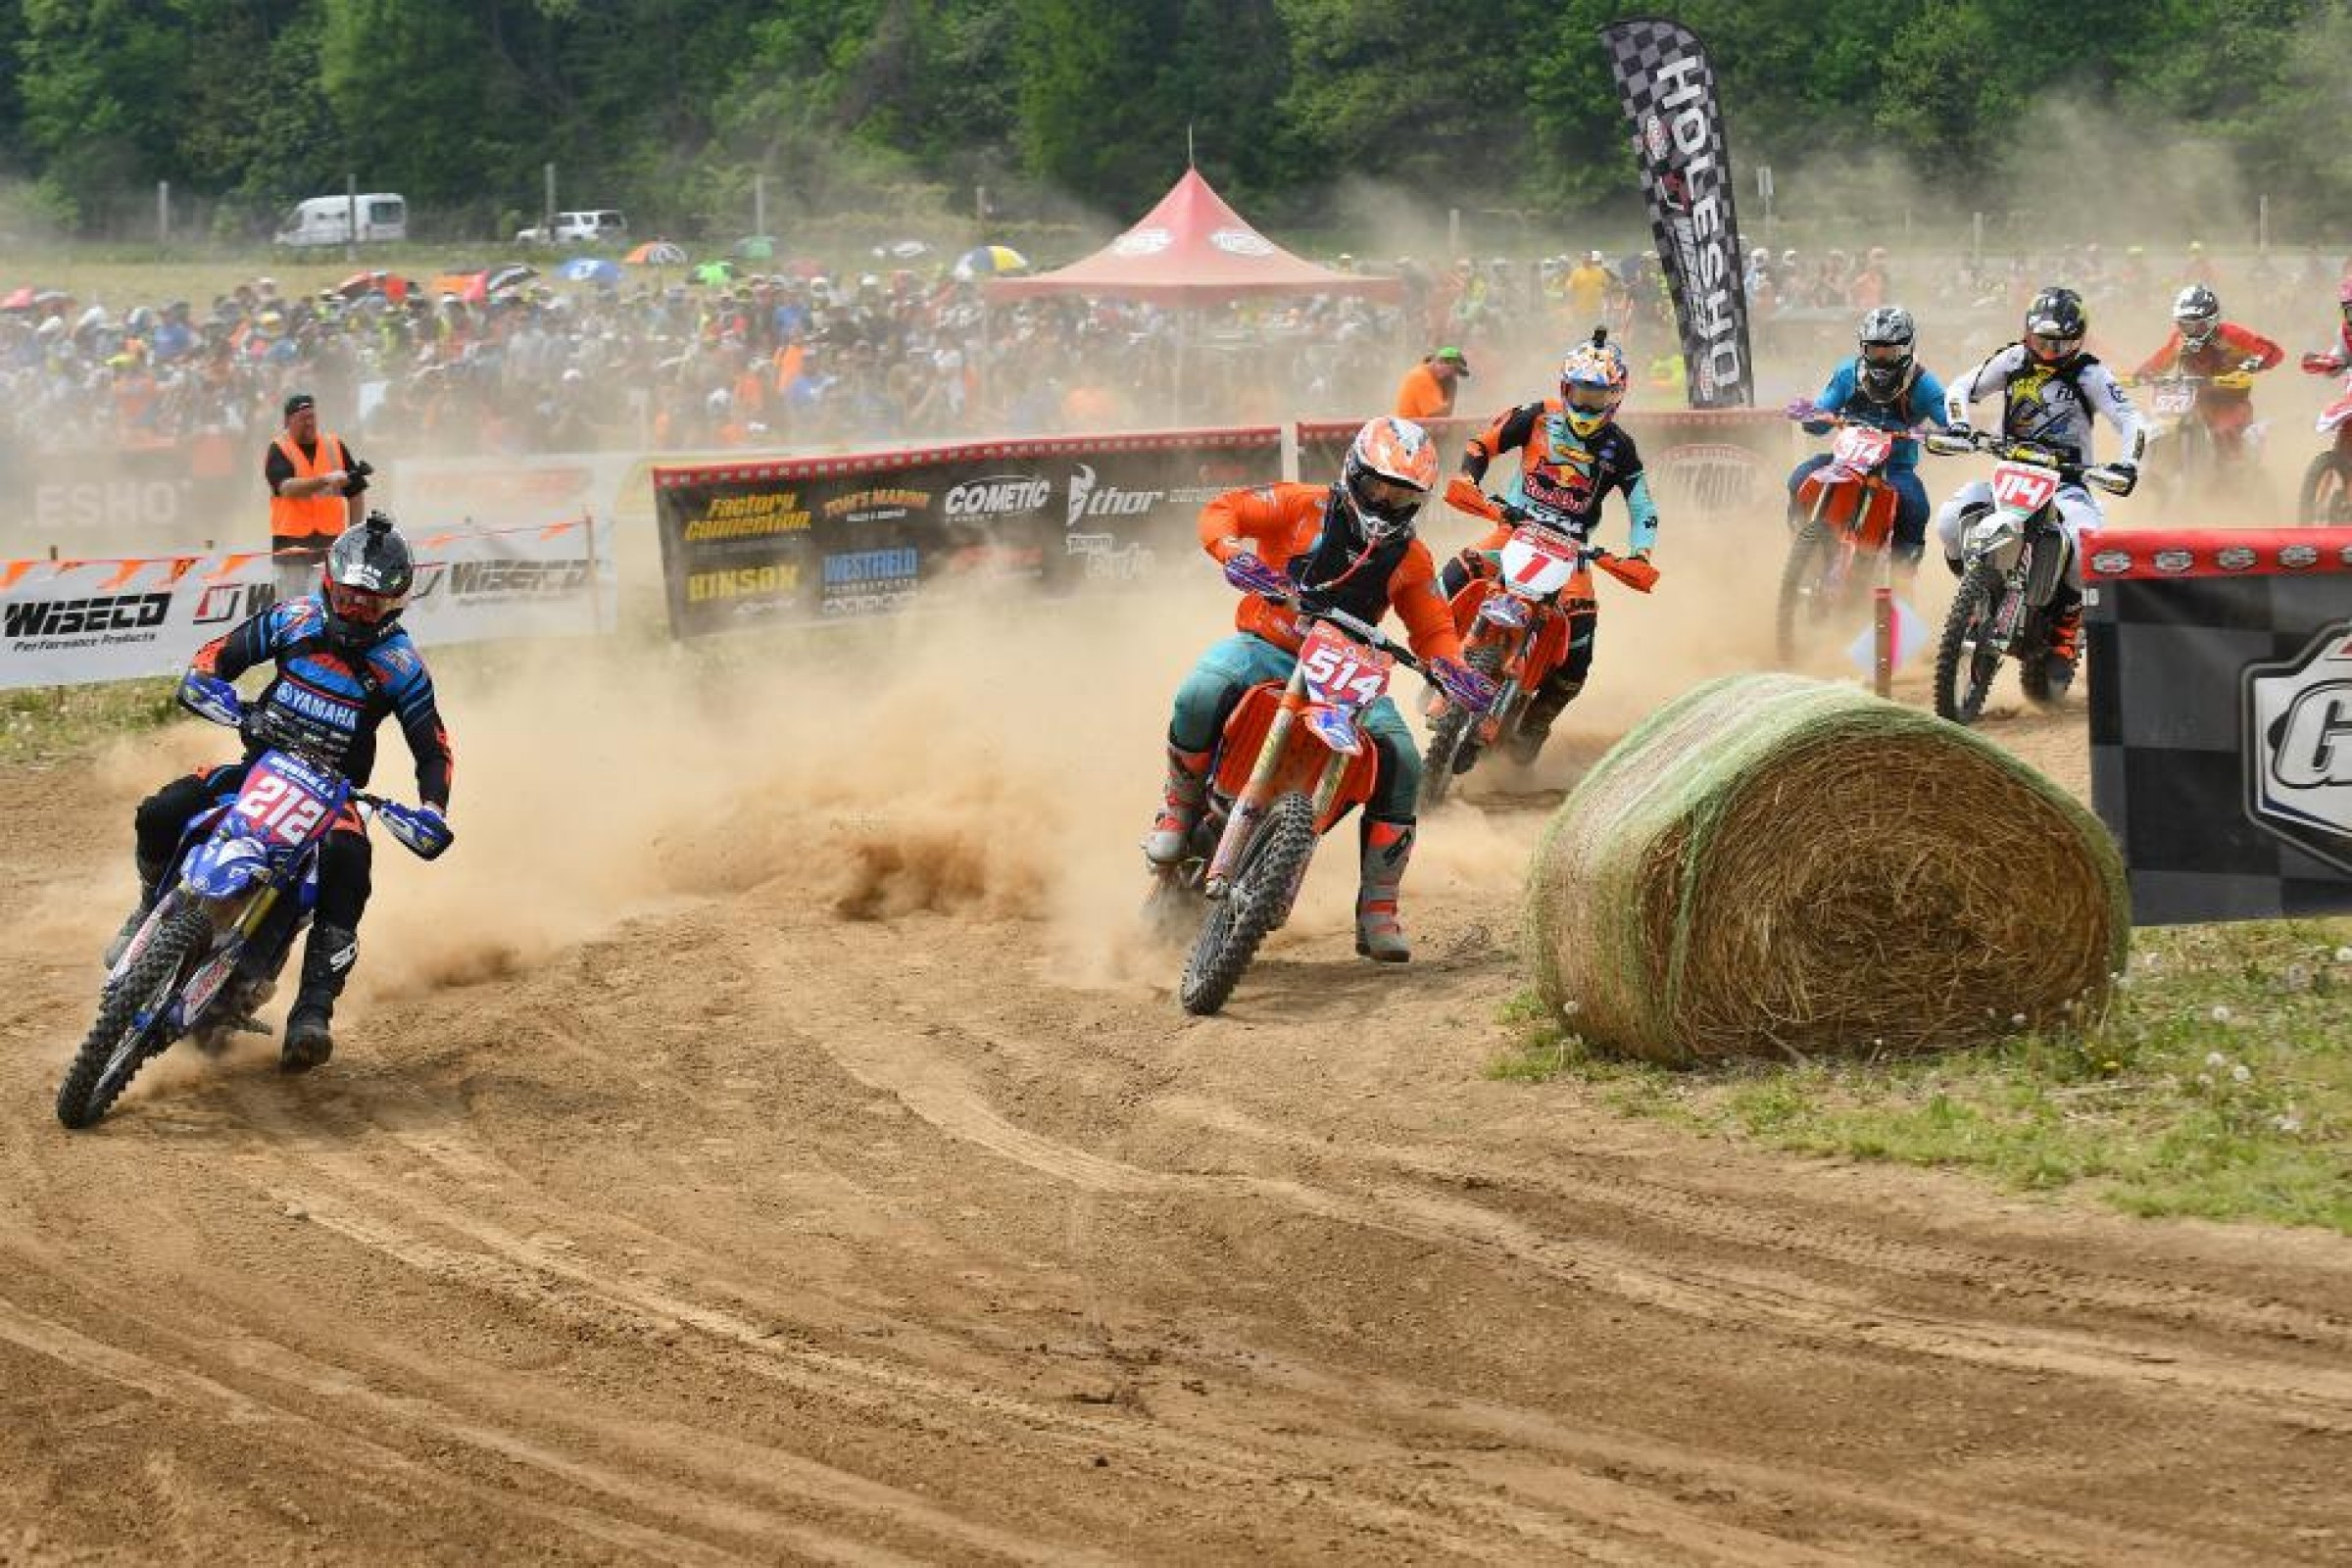 Kailub Russell Comes Out on Top at X-Factor Whitetails GNCC